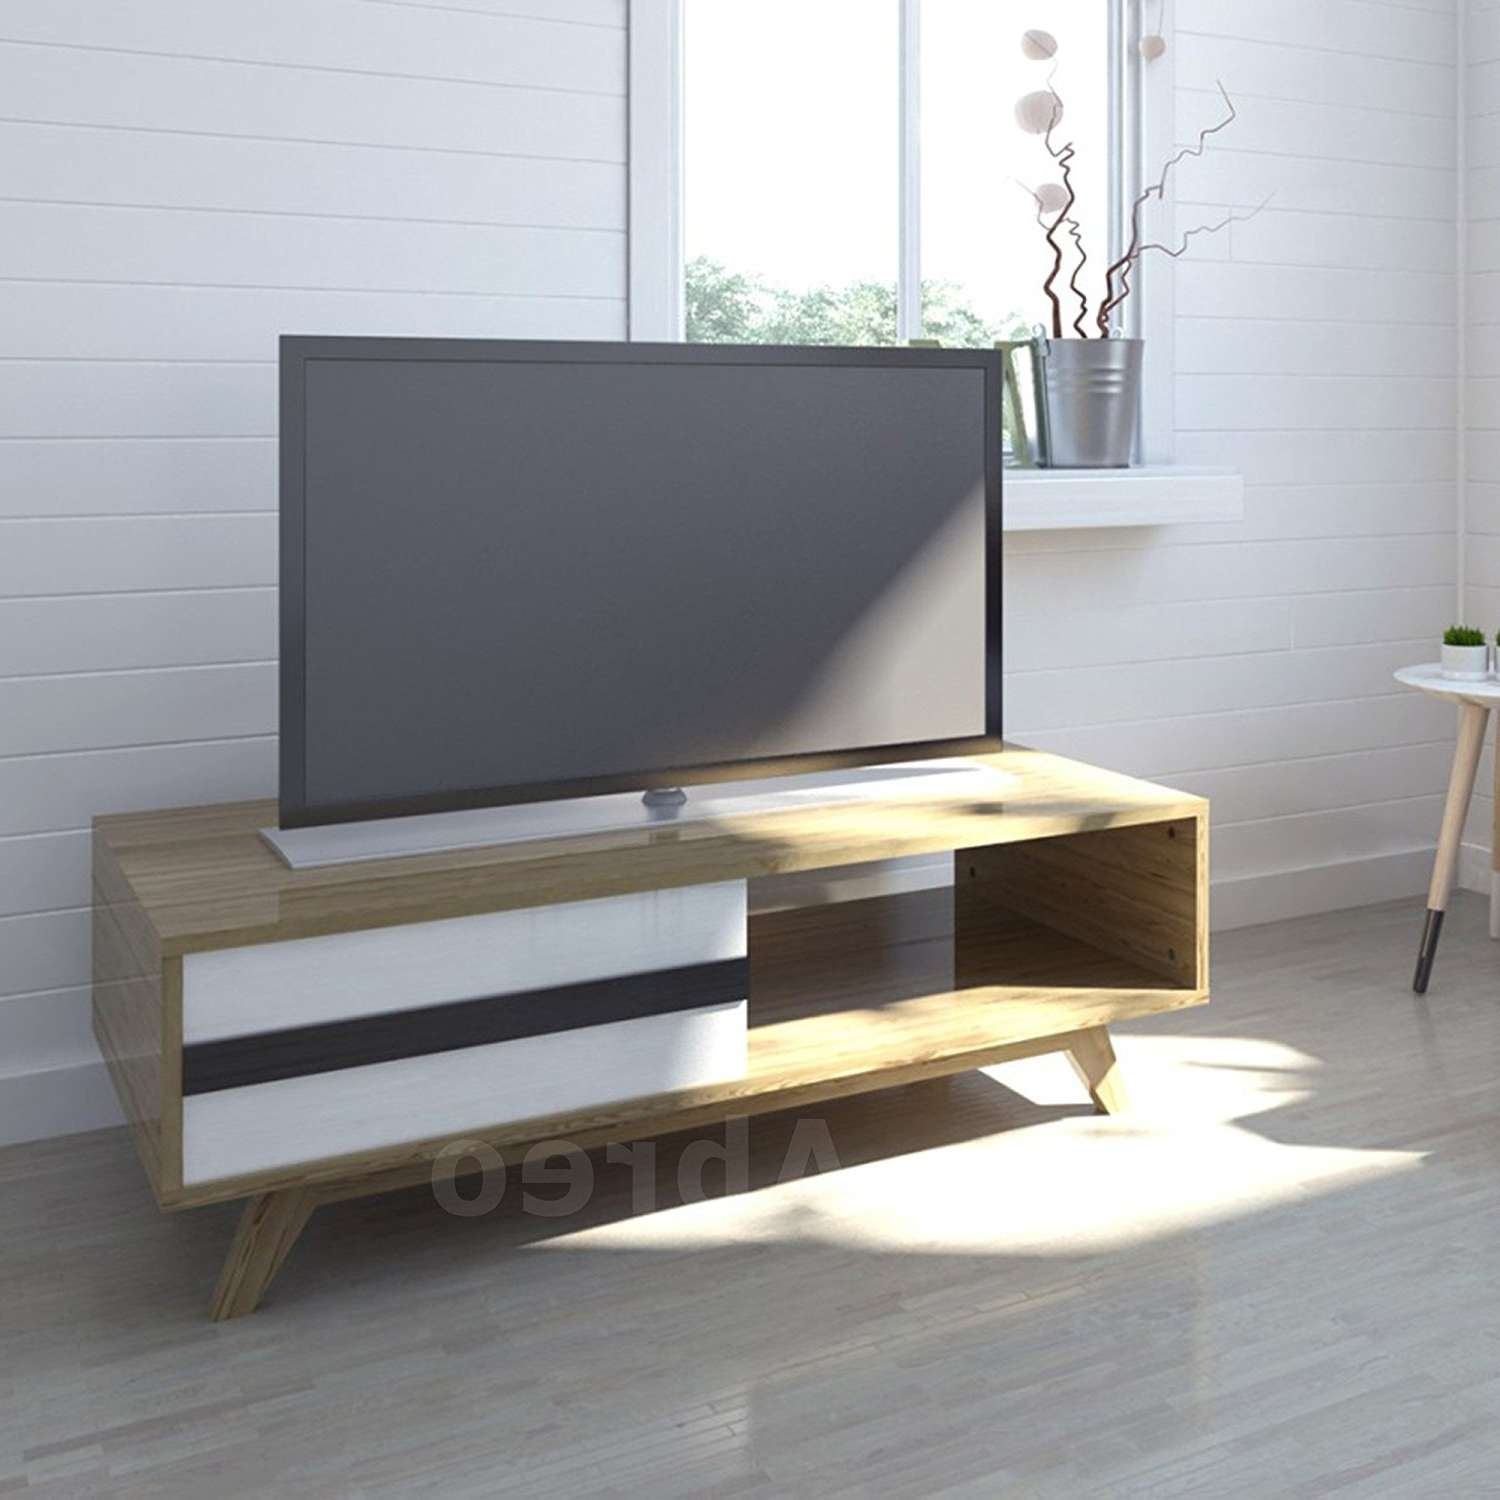 Popular Tv Unit And Coffee Table Sets Throughout Coffee Table : Awesome Coffee Table Sets Clearance White Living (View 18 of 20)